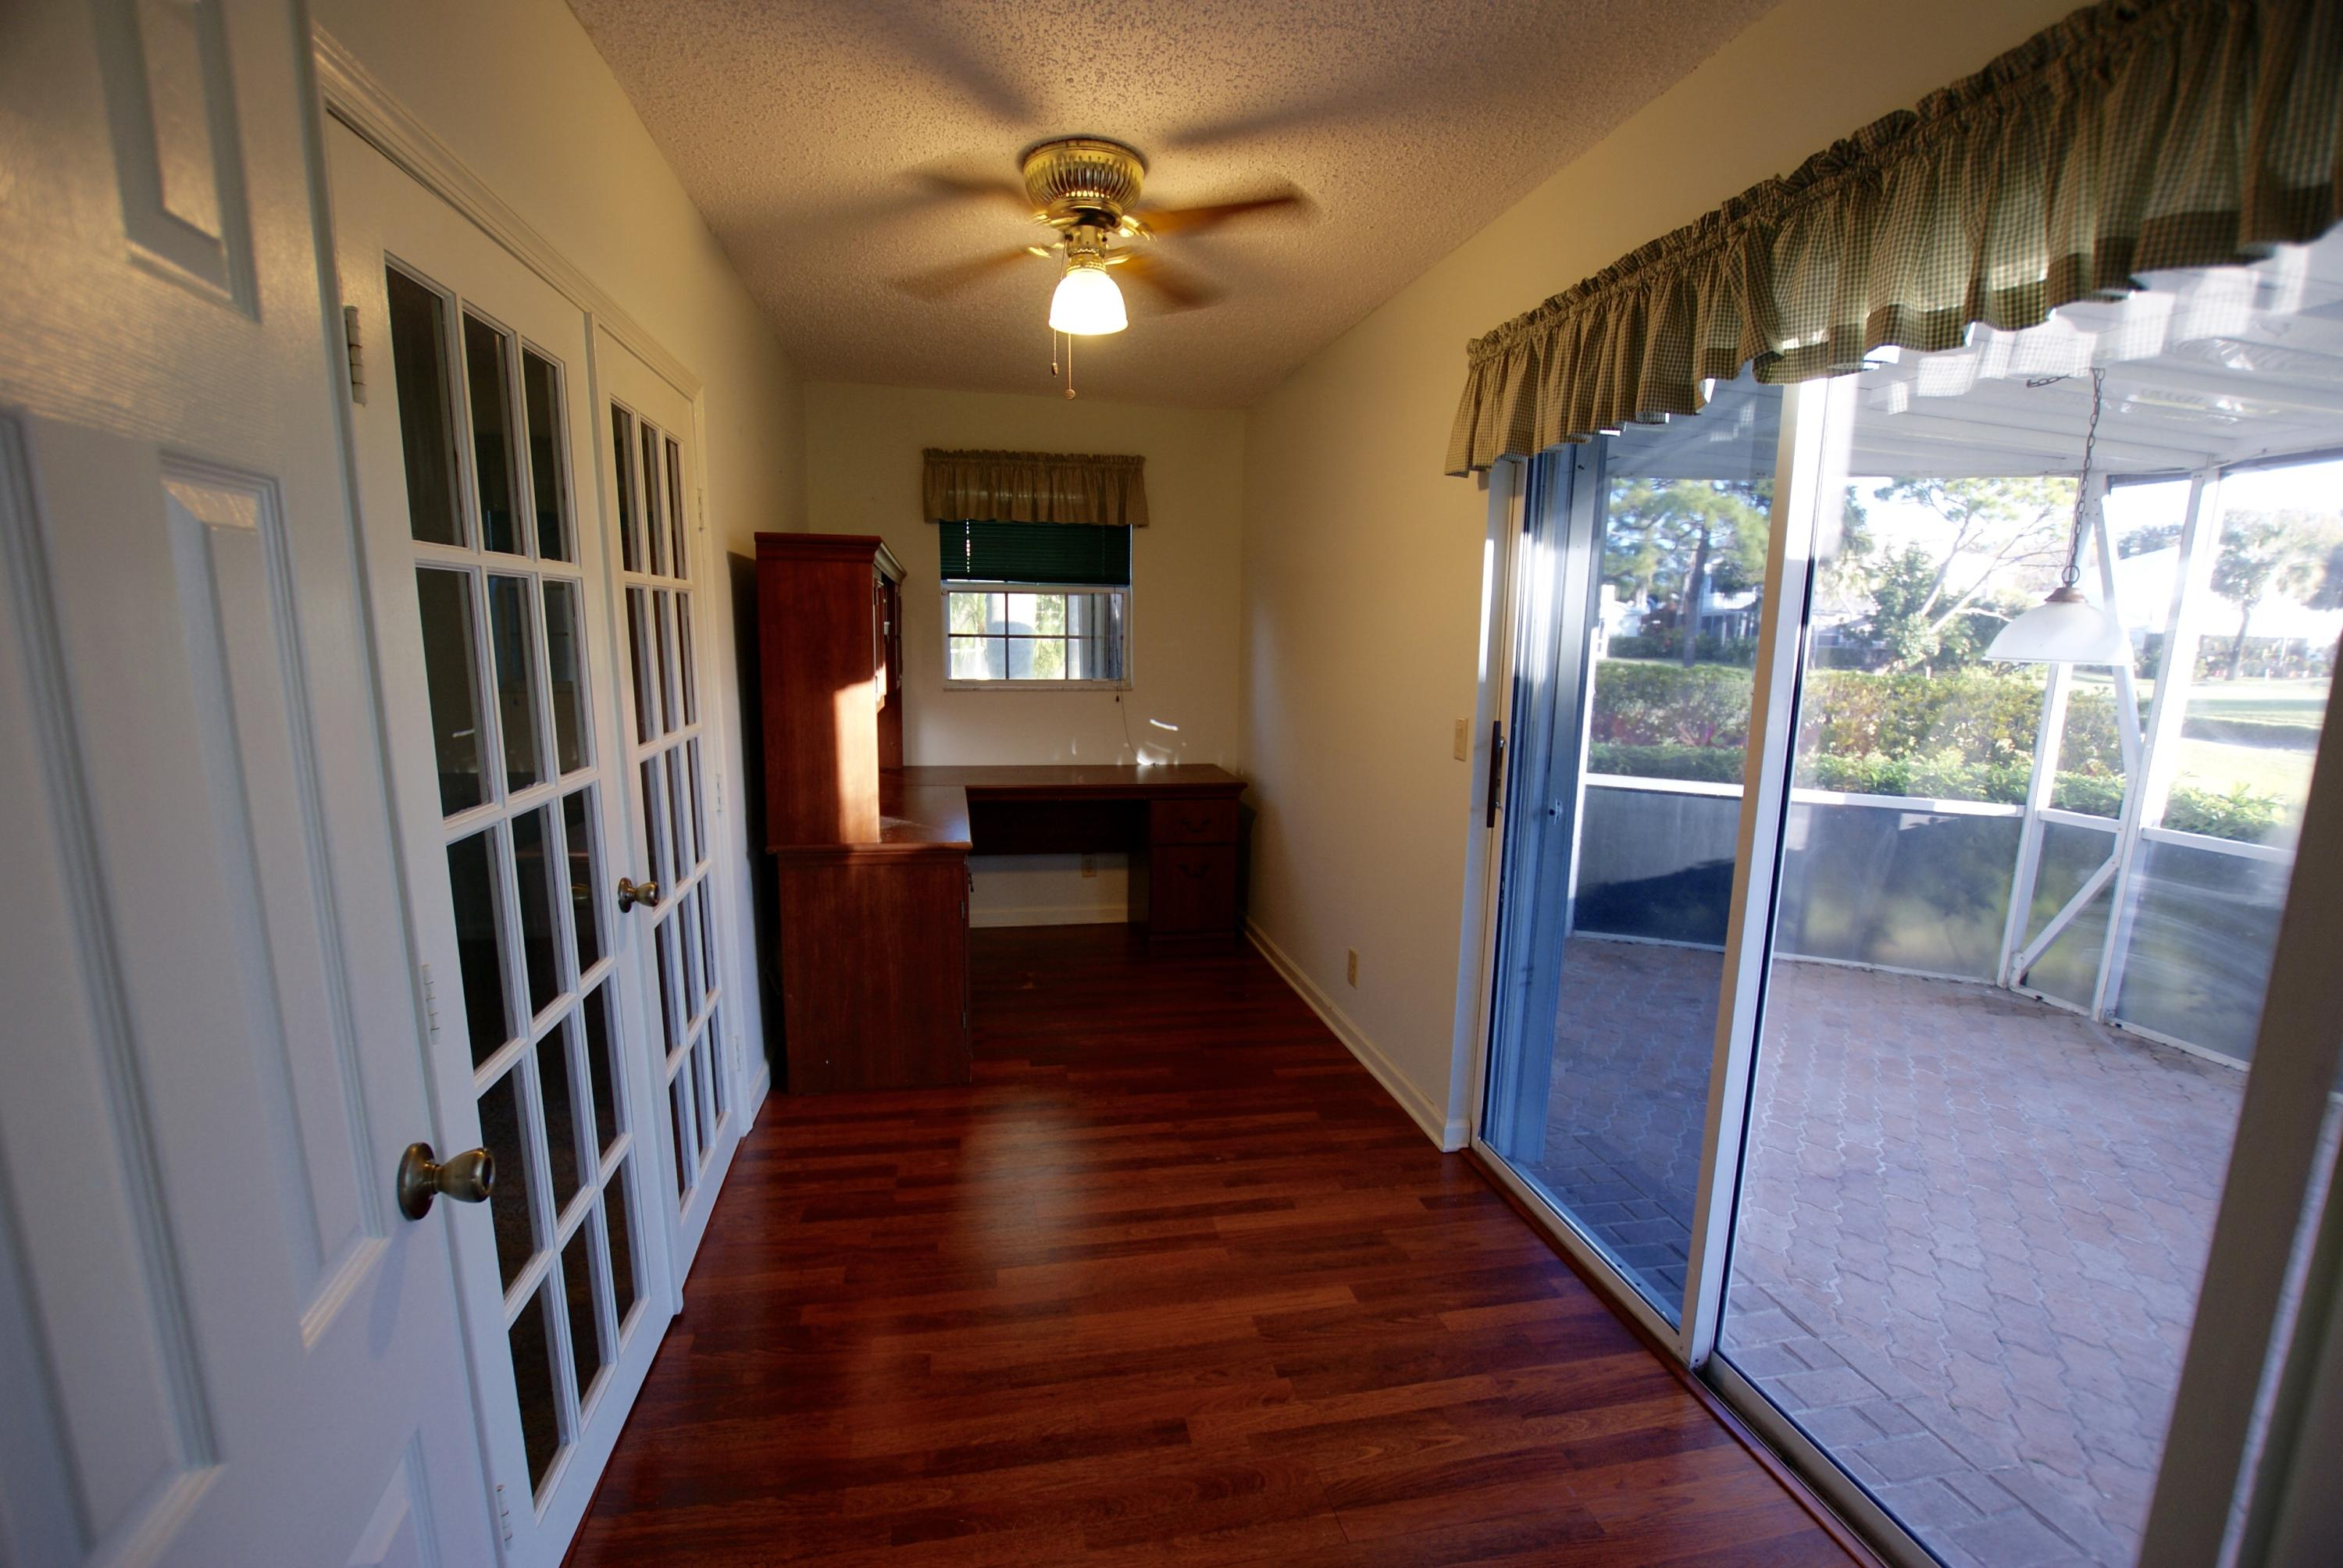 NORTH PASSAGE HOMES FOR SALE